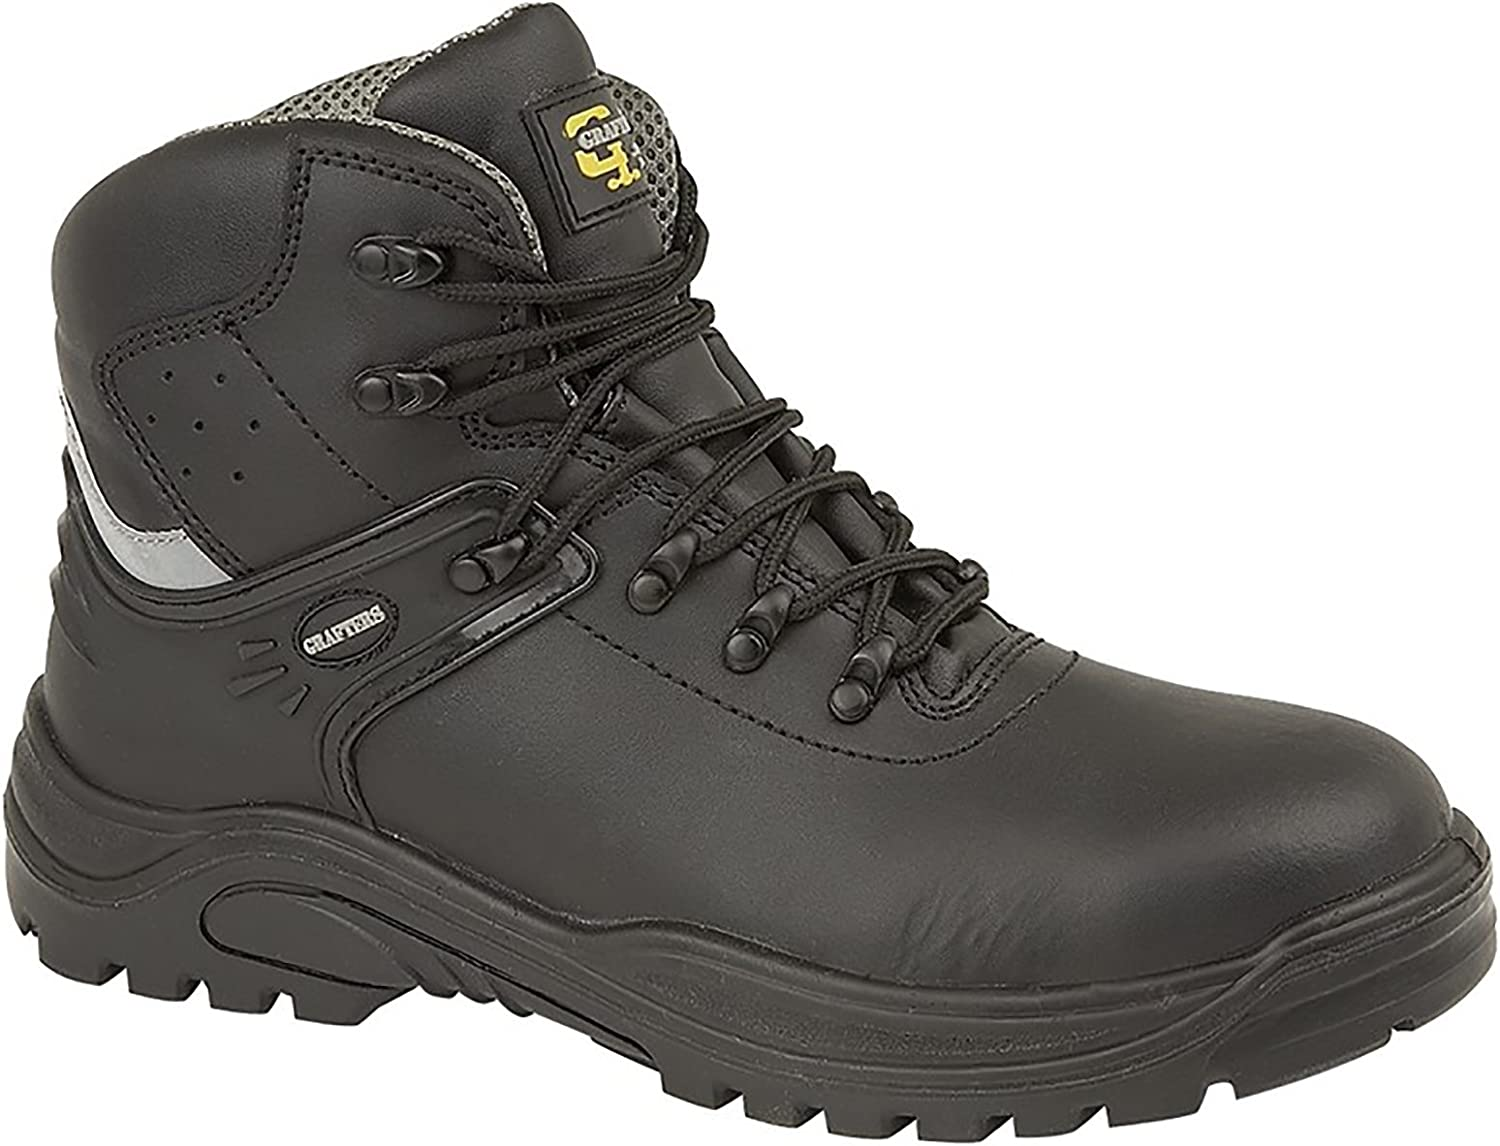 Grafters Transporter Unisex Leather Safety Boots Black Grey